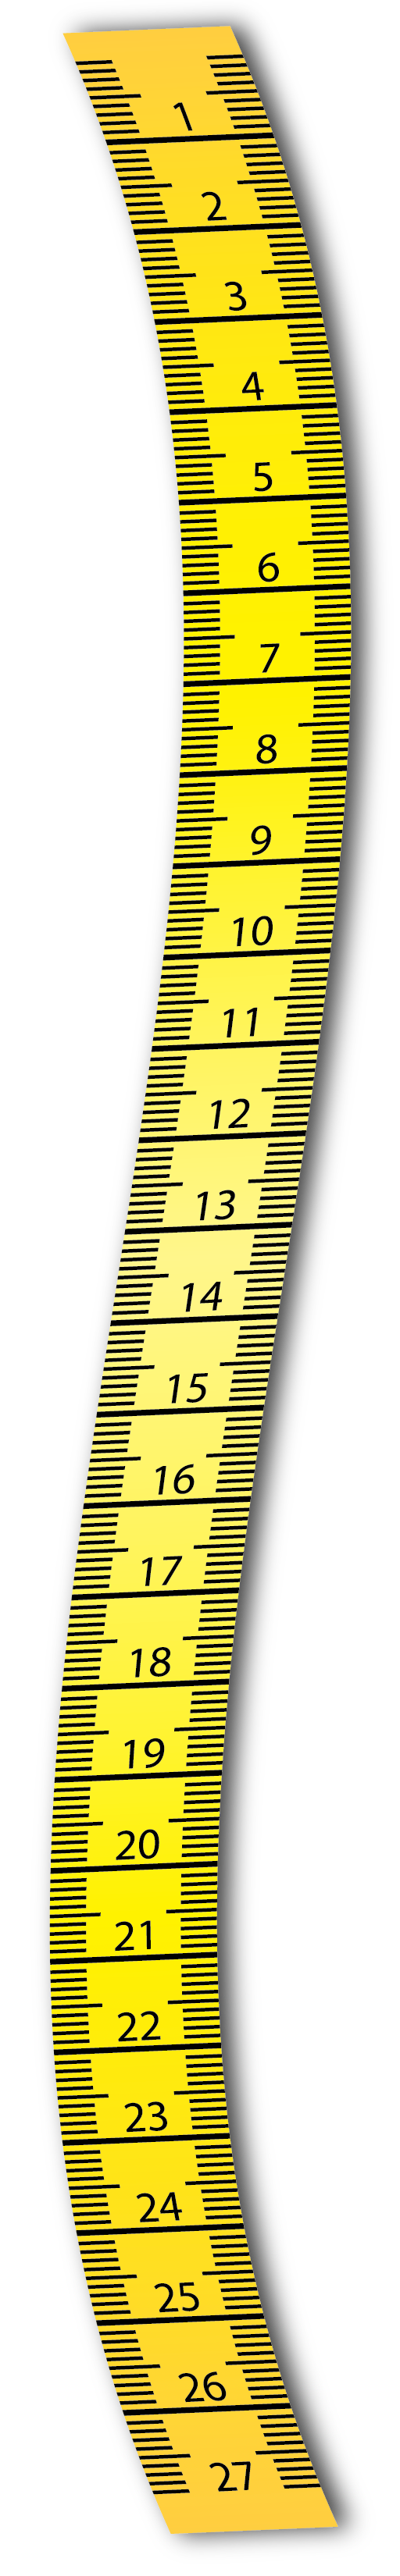 Clipart ruler length. Measure tape png images